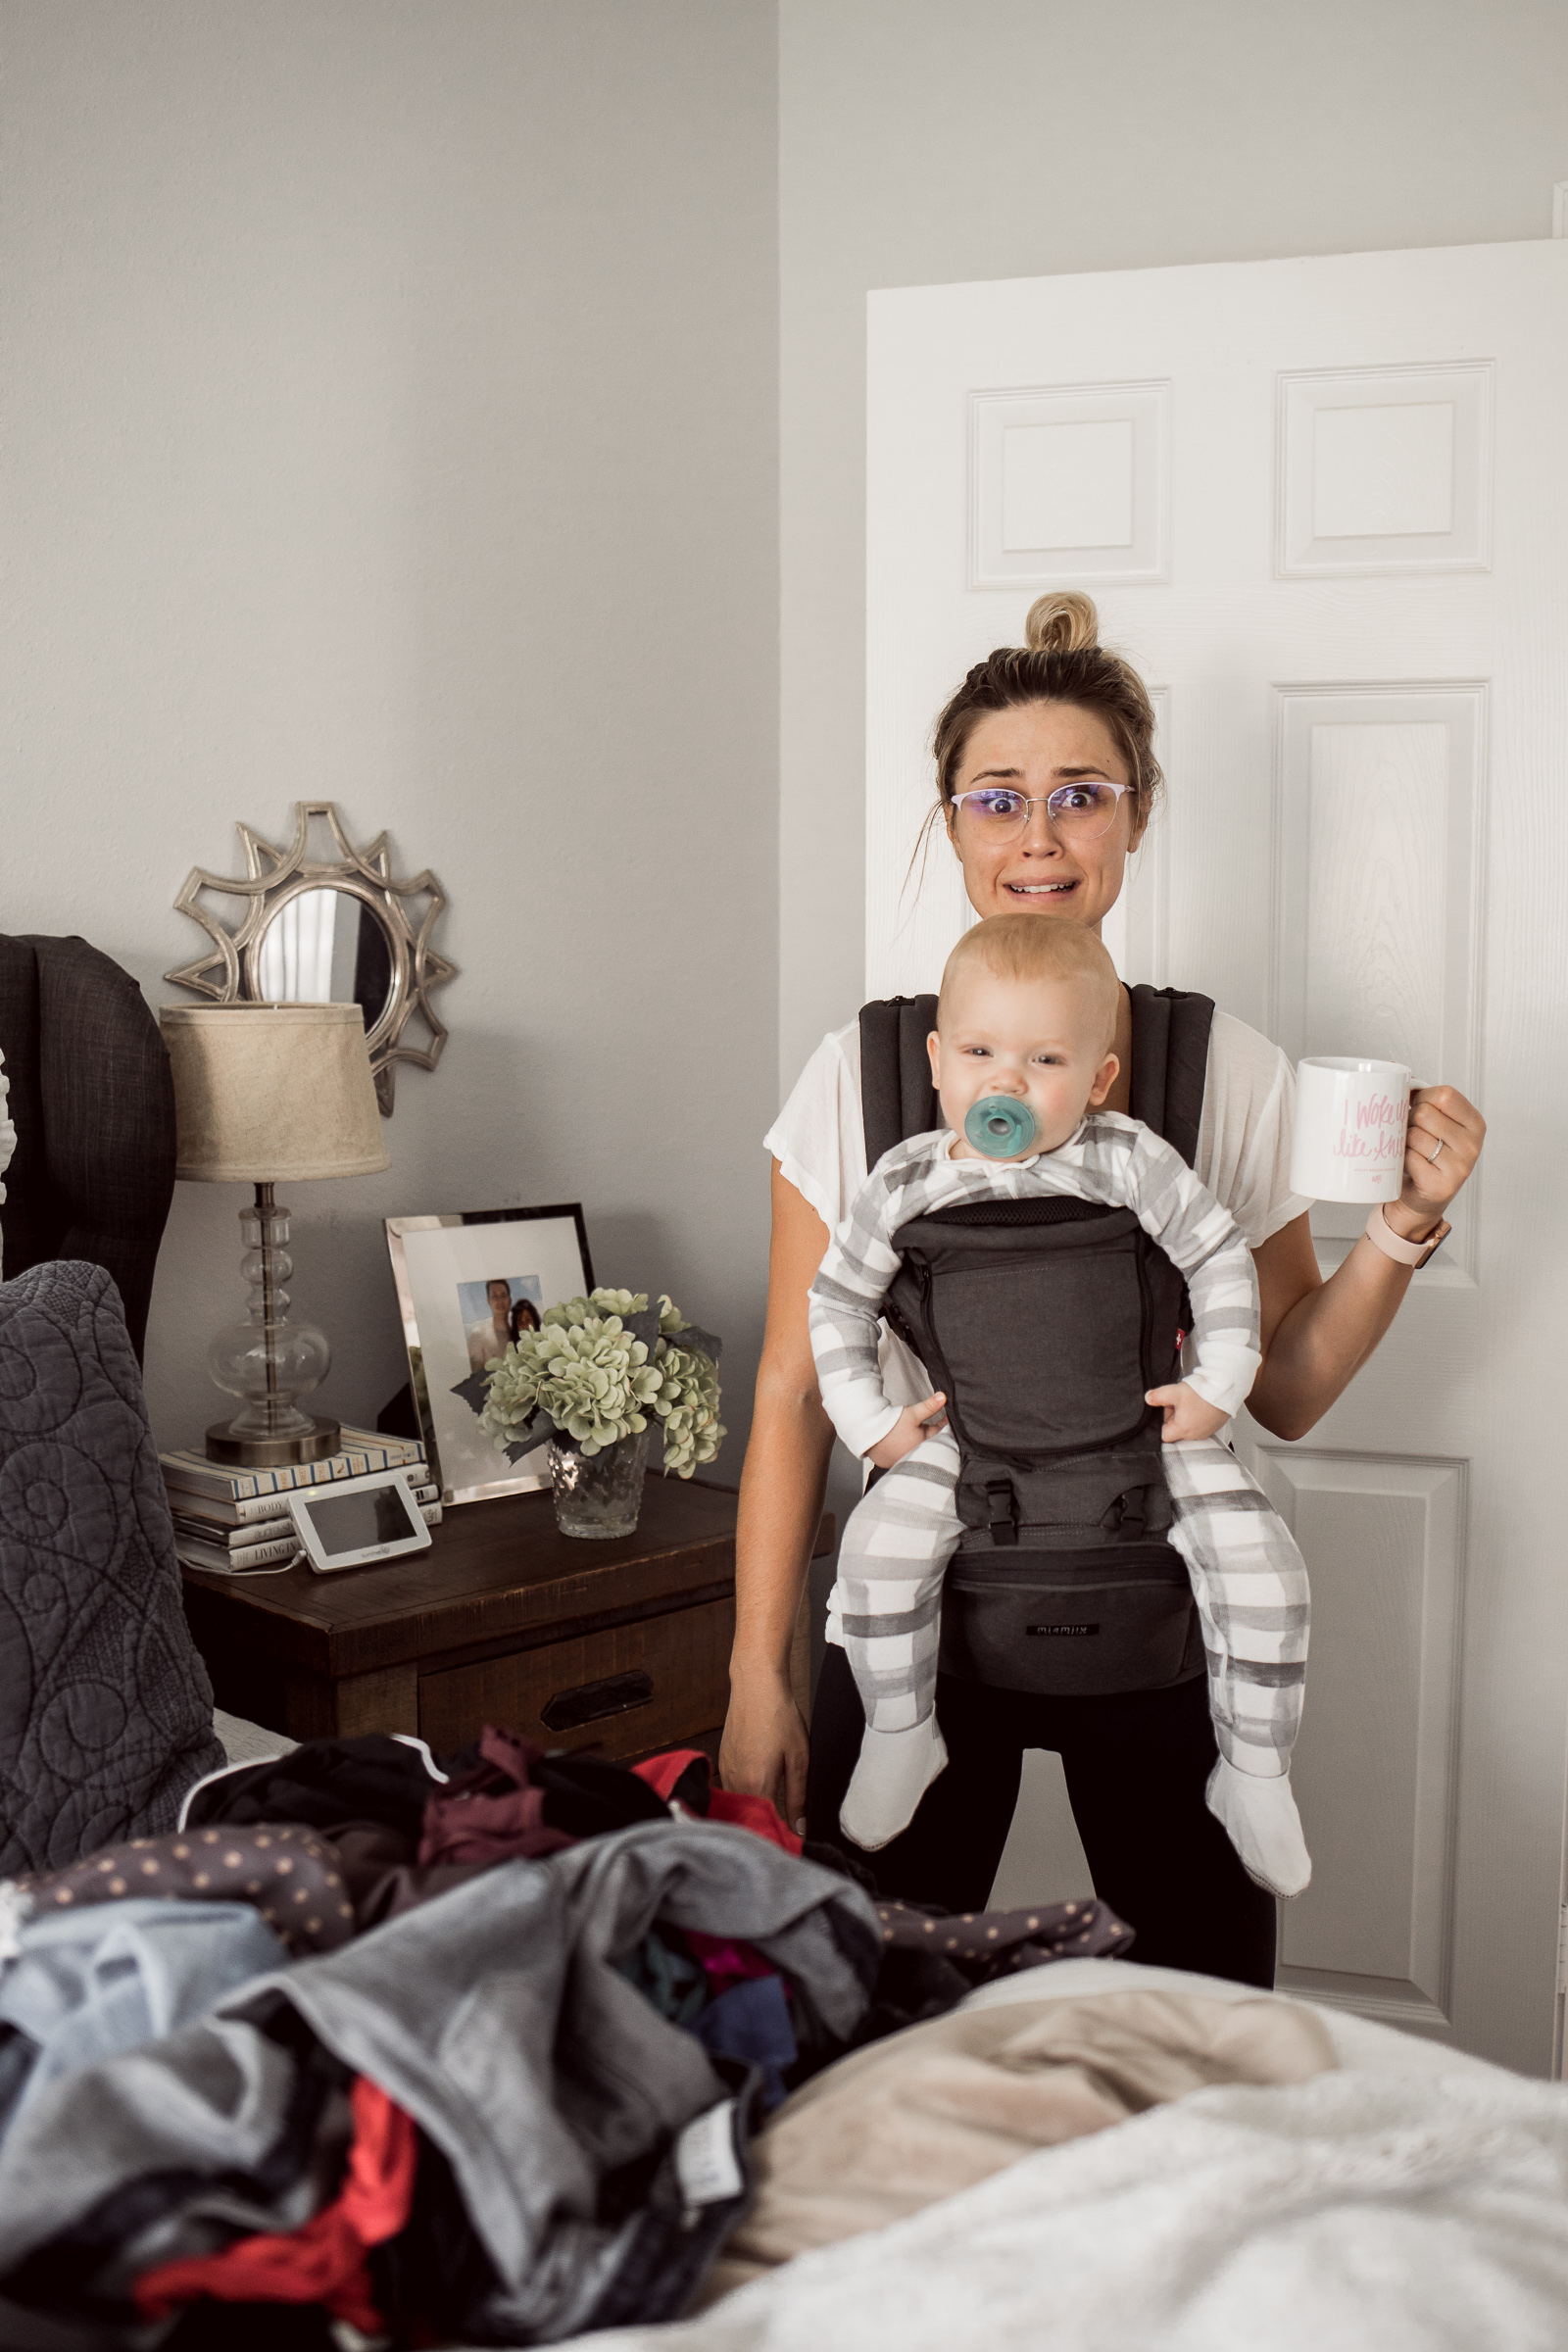 Houston fashion blogger Uptown with Elly Brown wears the MiaMily baby carrier